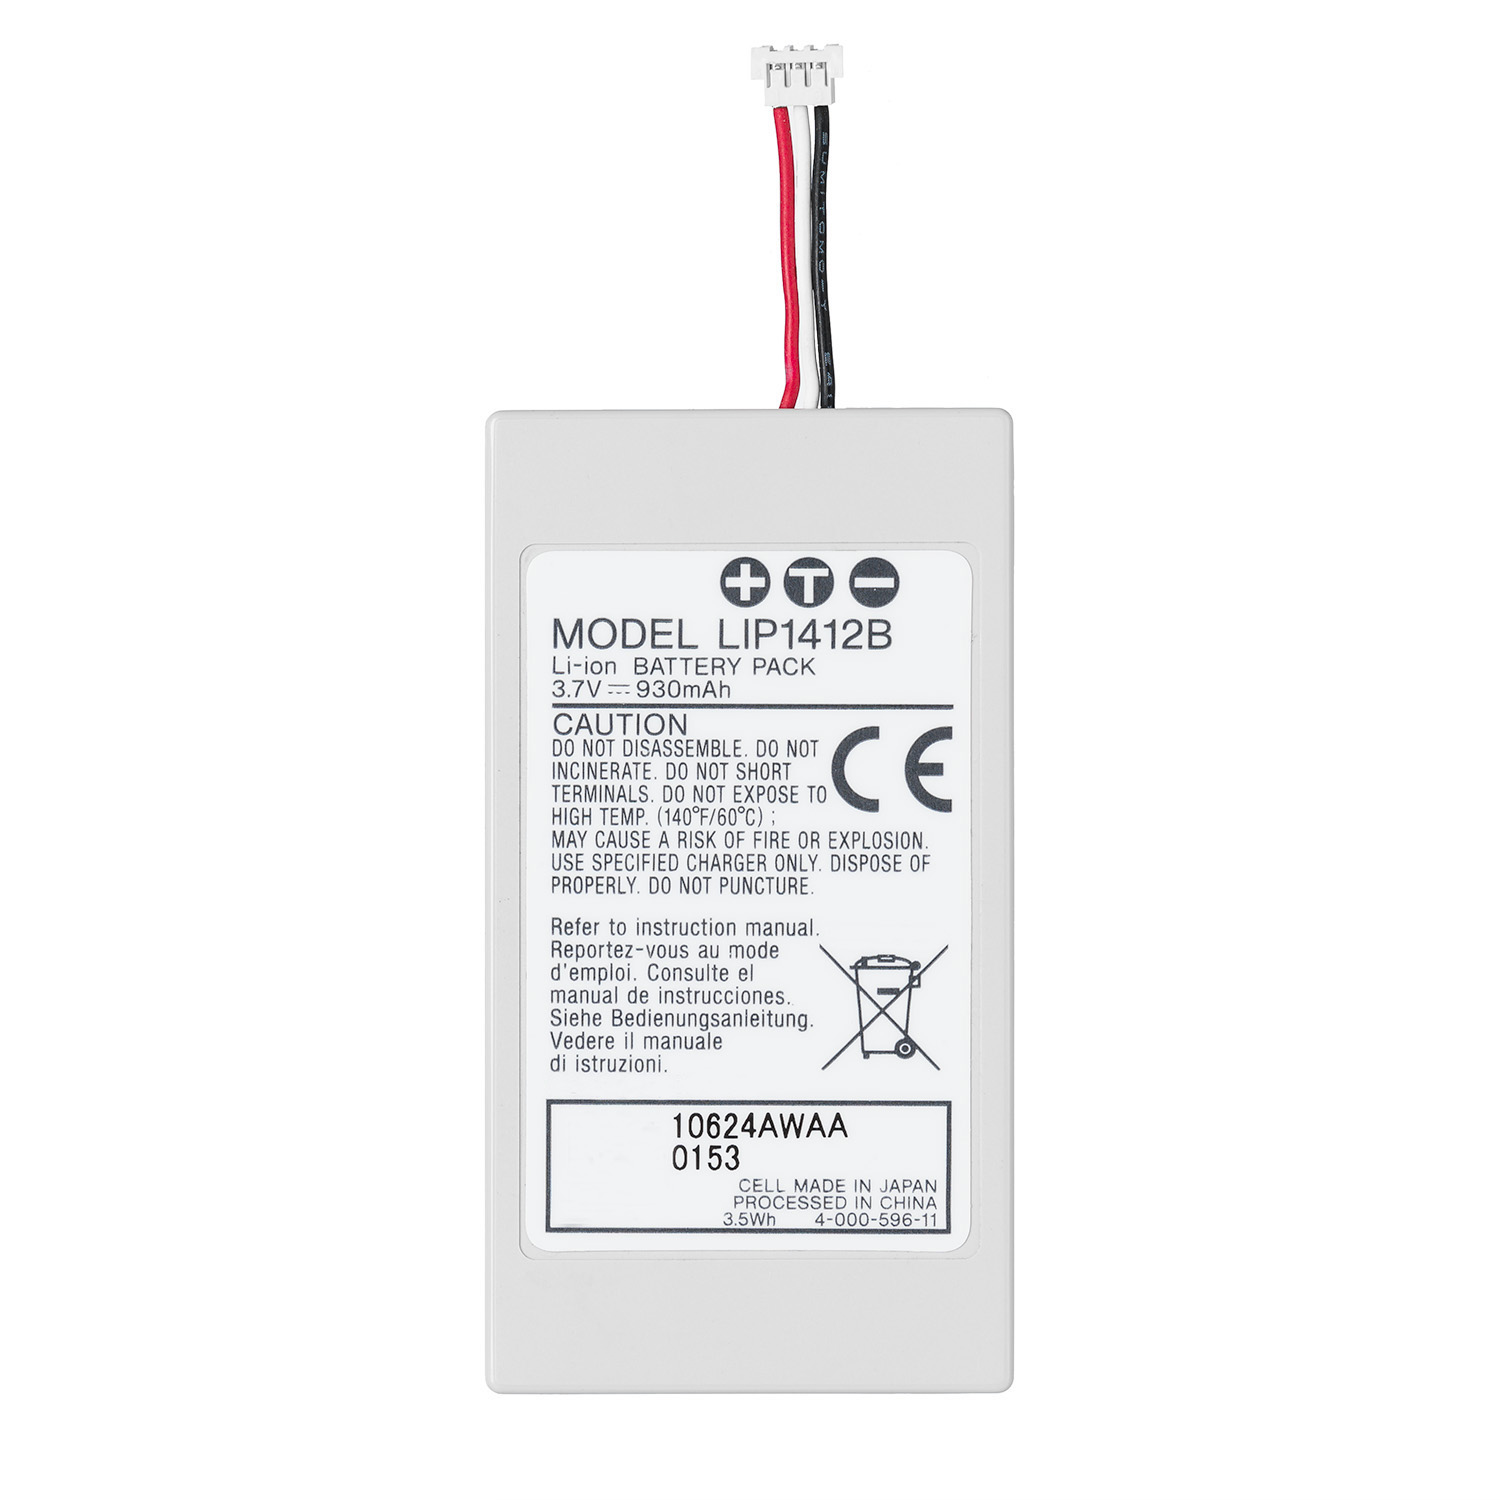 OSTENT 3 7V 930mAh Rechargeable Battery Pack Replacement for Sony PSP GO PSP-N1000 N1001 N1002 N1003 N1004